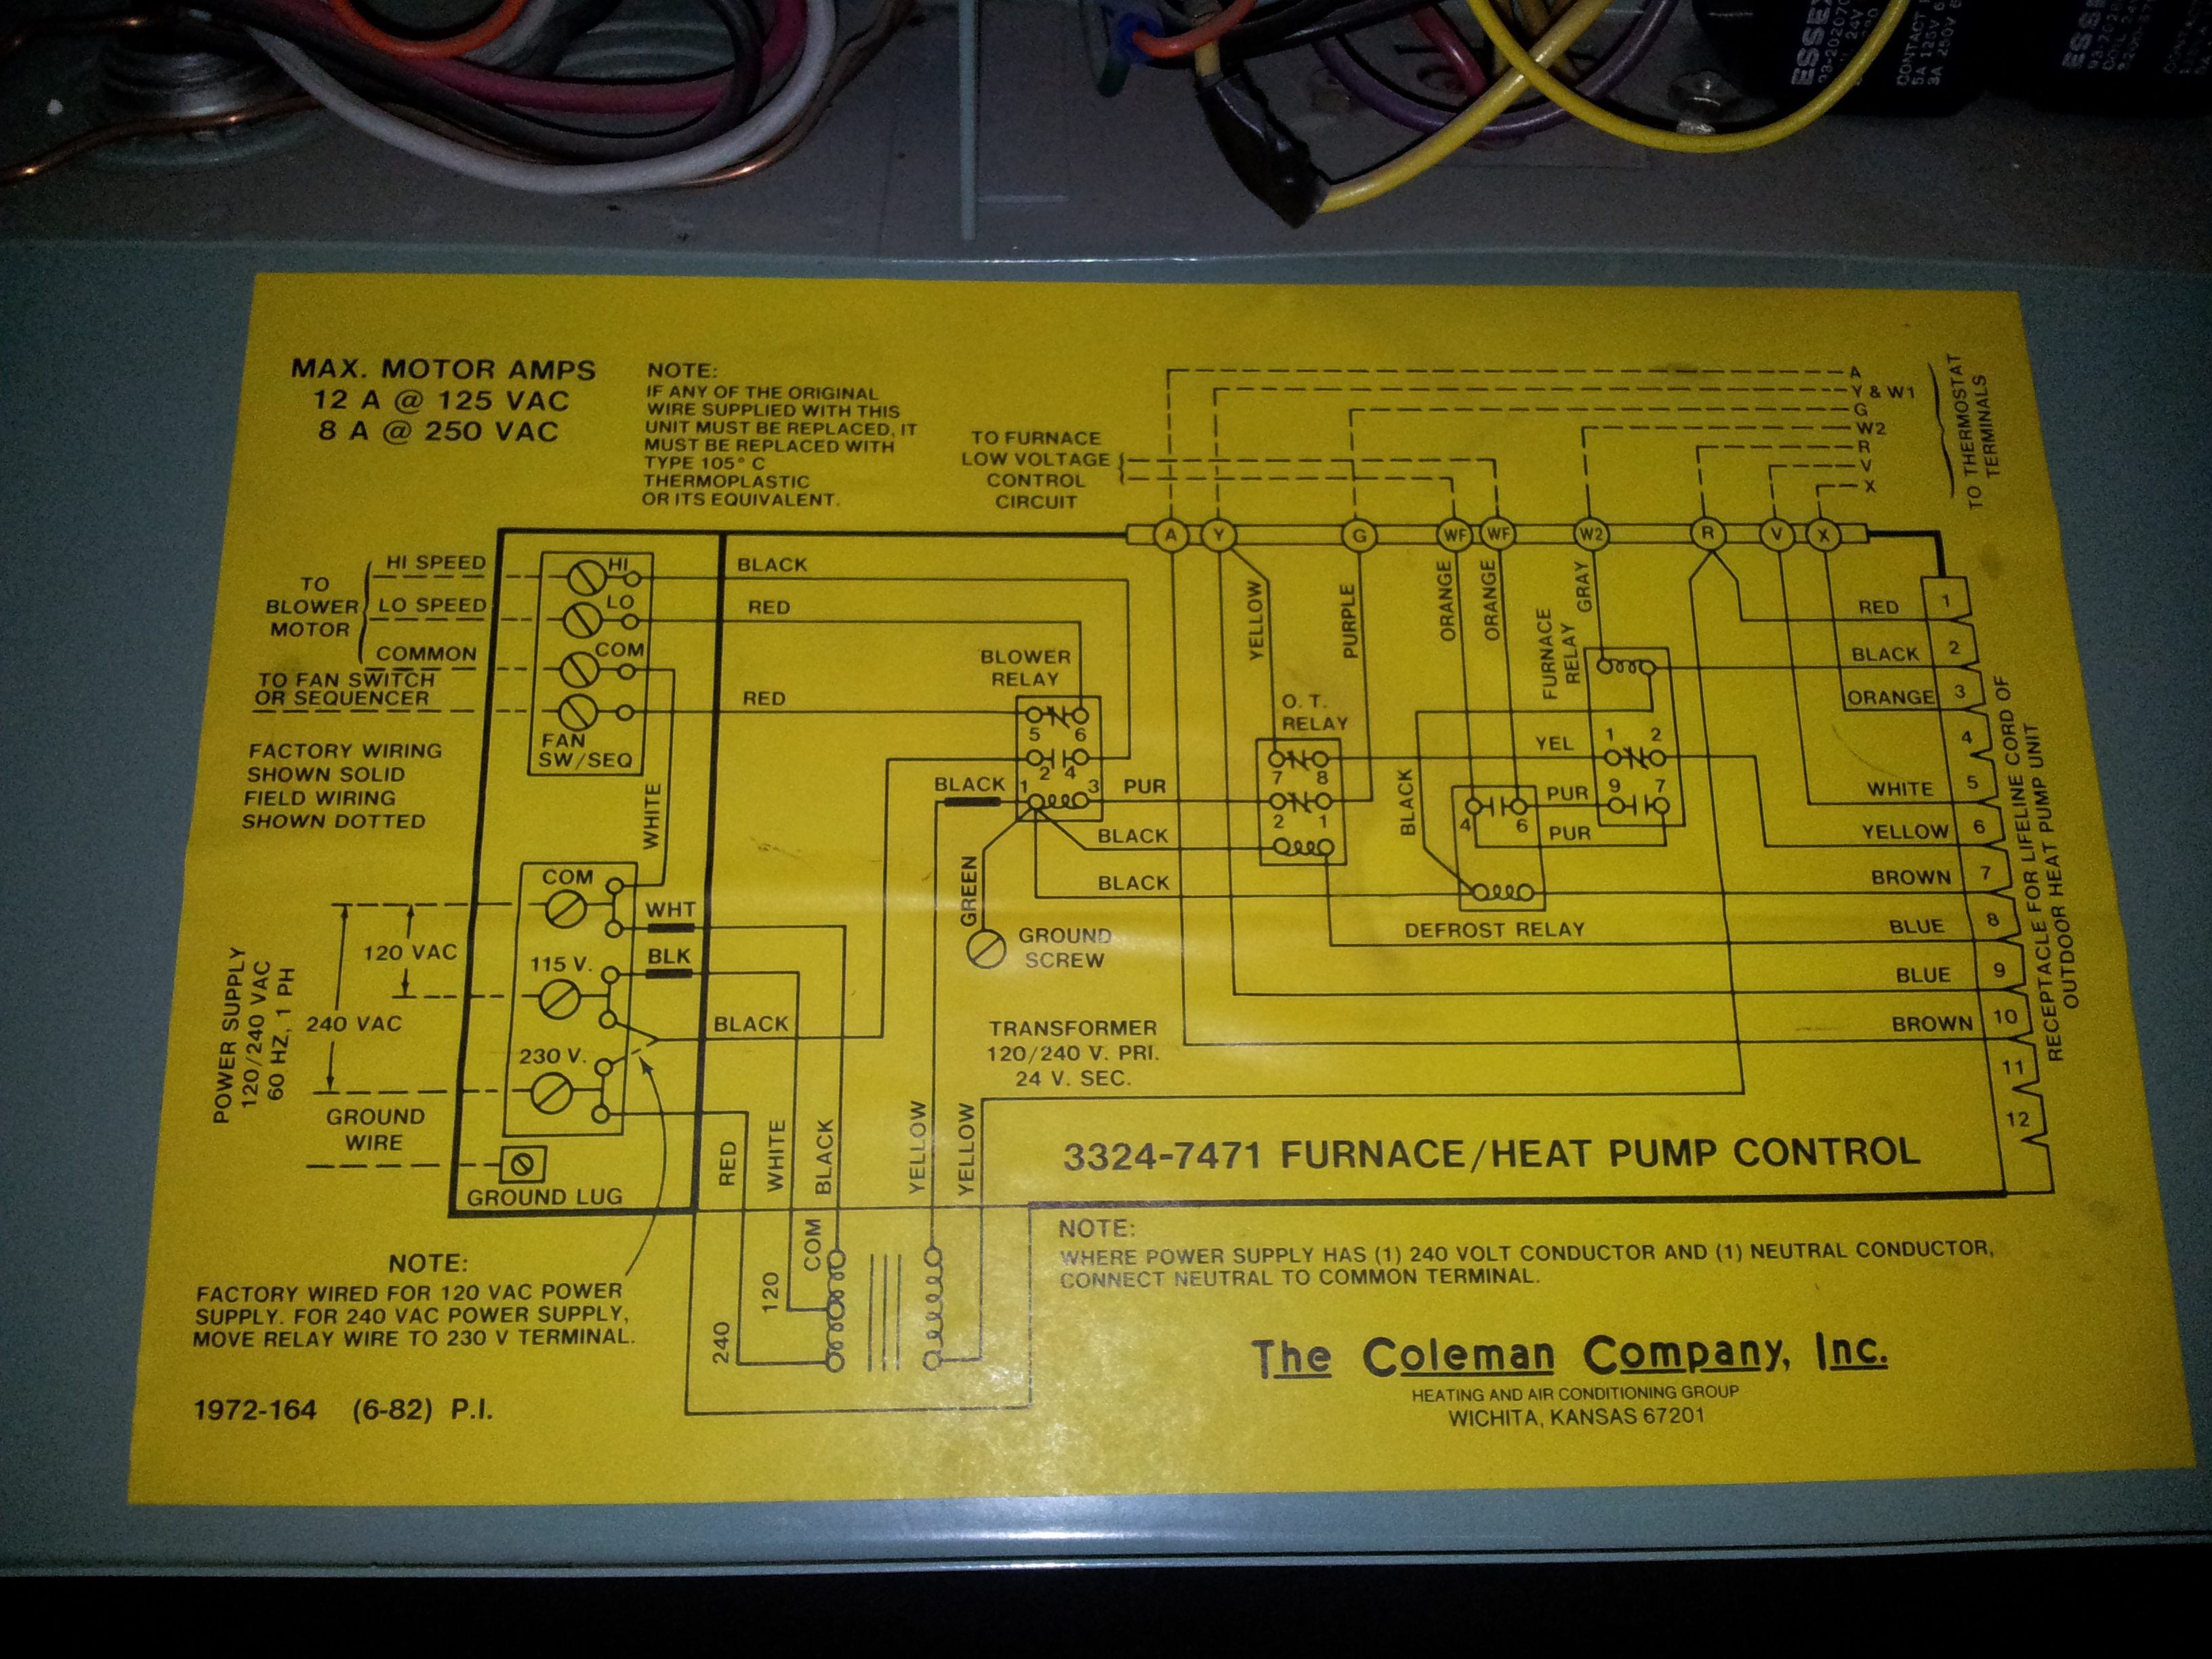 2012 08 07_020543_20120806_170817 coleman evcon wiring diagram coleman evcon wiring diagram 6bdc coleman thermostat wiring diagram at bayanpartner.co